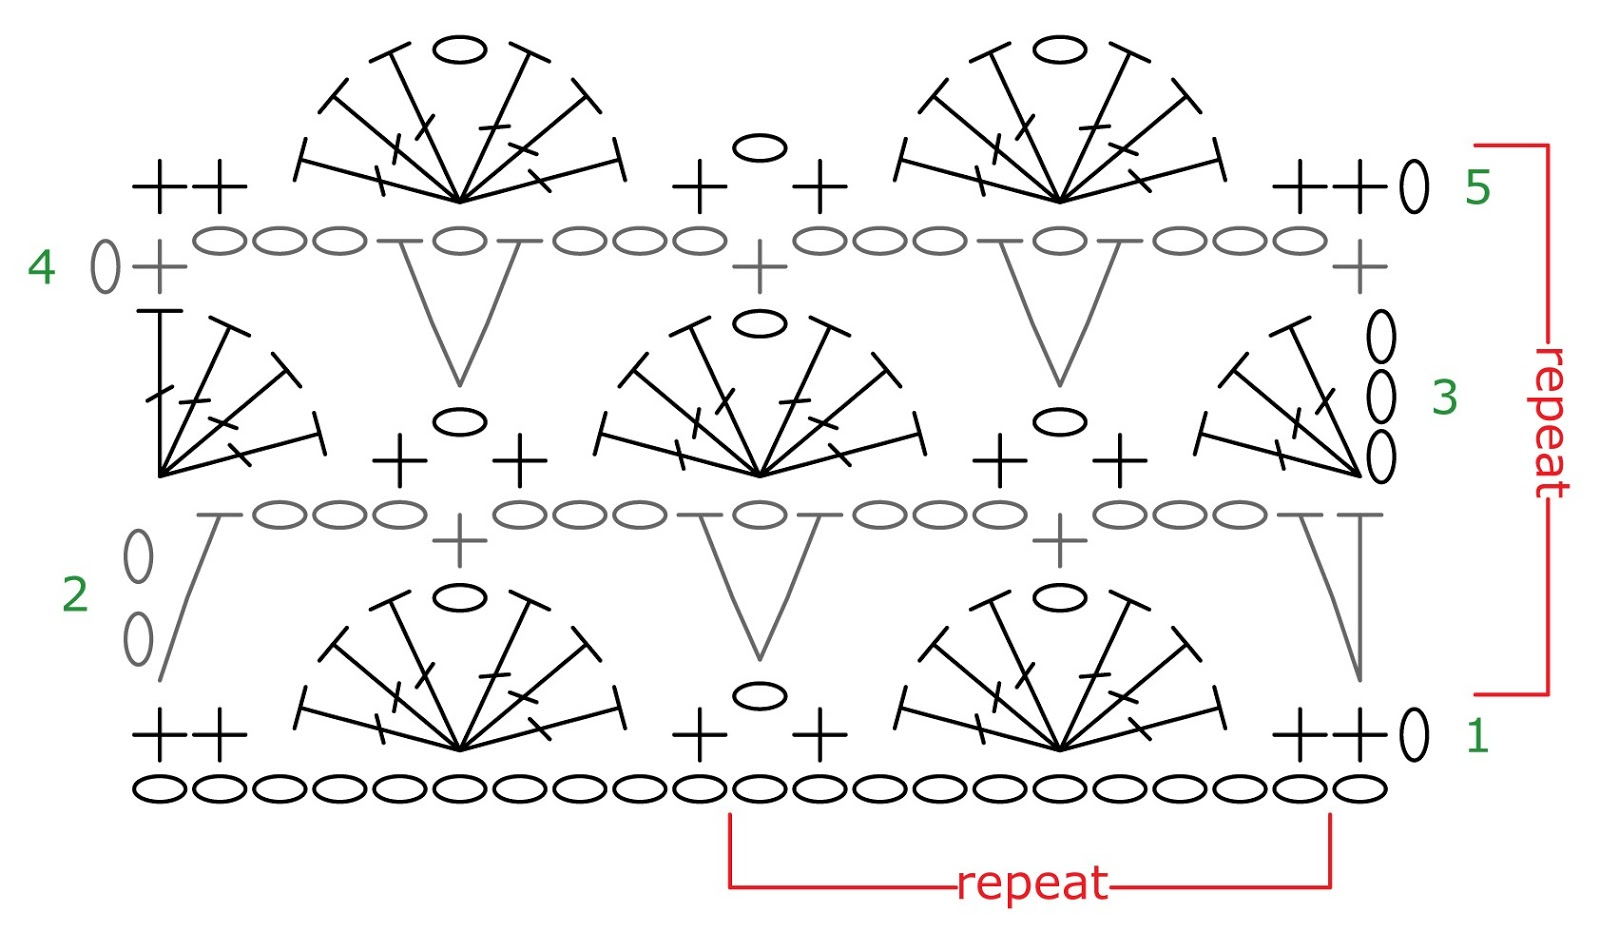 crochet stitches diagrams the ch1 spaces between the single crochet